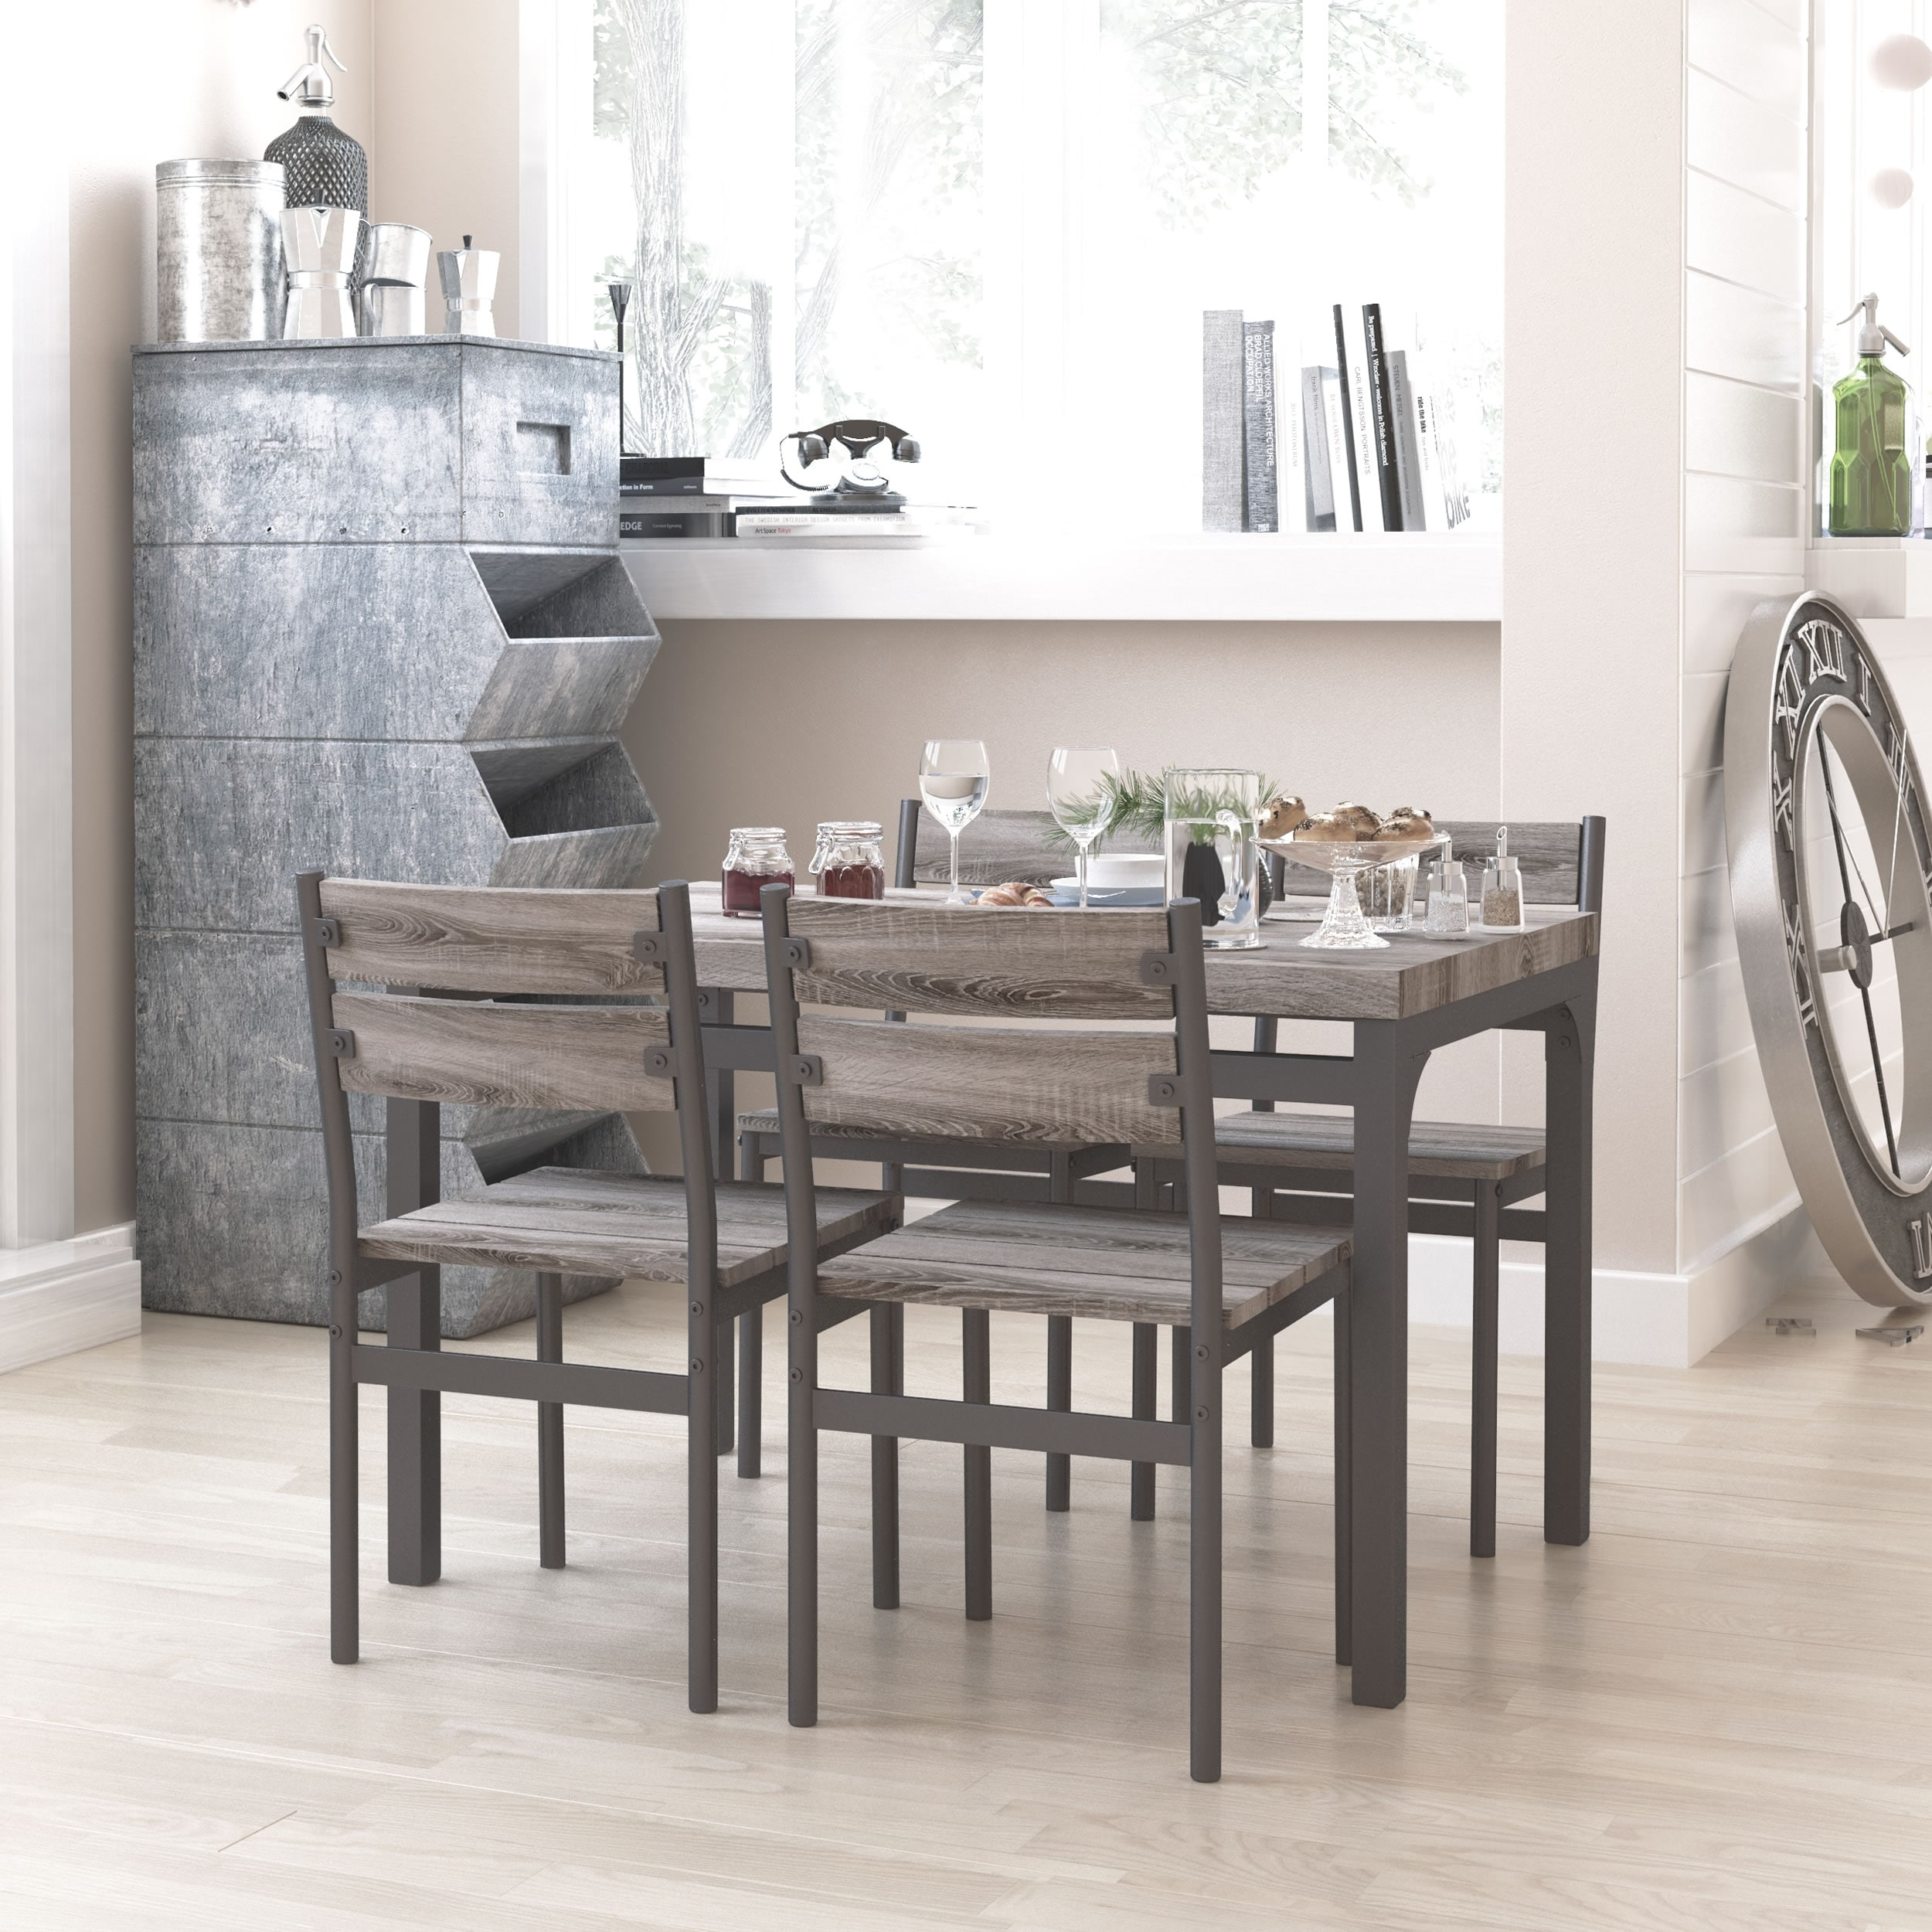 Zenvida 5 Piece Dining Set Rustic Grey Wooden Kitchen Table And 4 Chairs Overstock 21803691